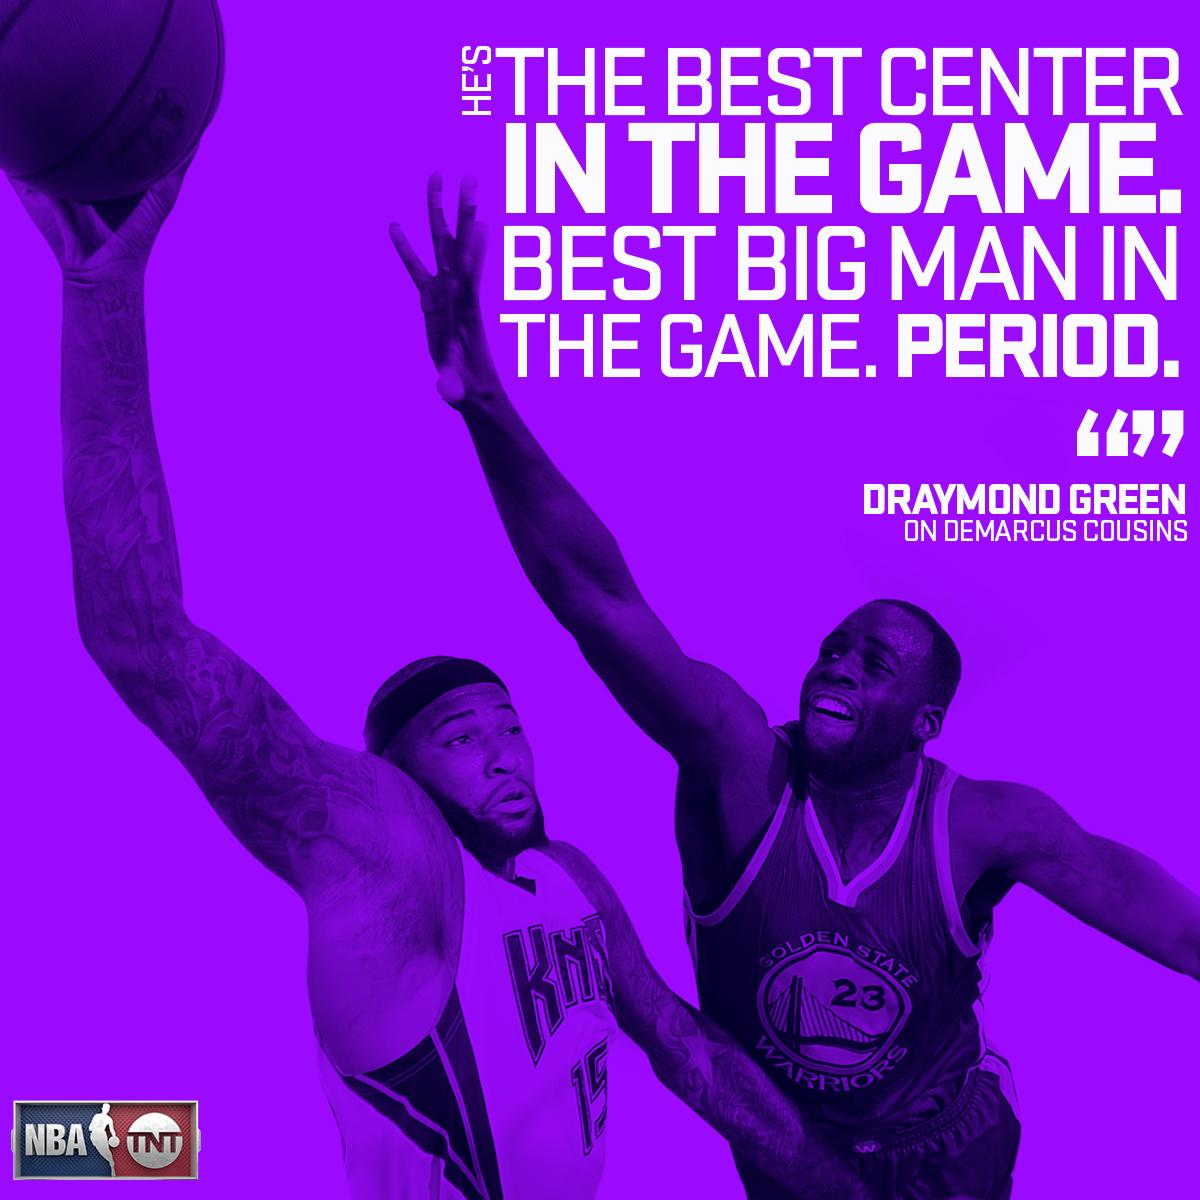 Draymond has high praise for @boogiecousins... https://t.co/Z3Ypvurh7P